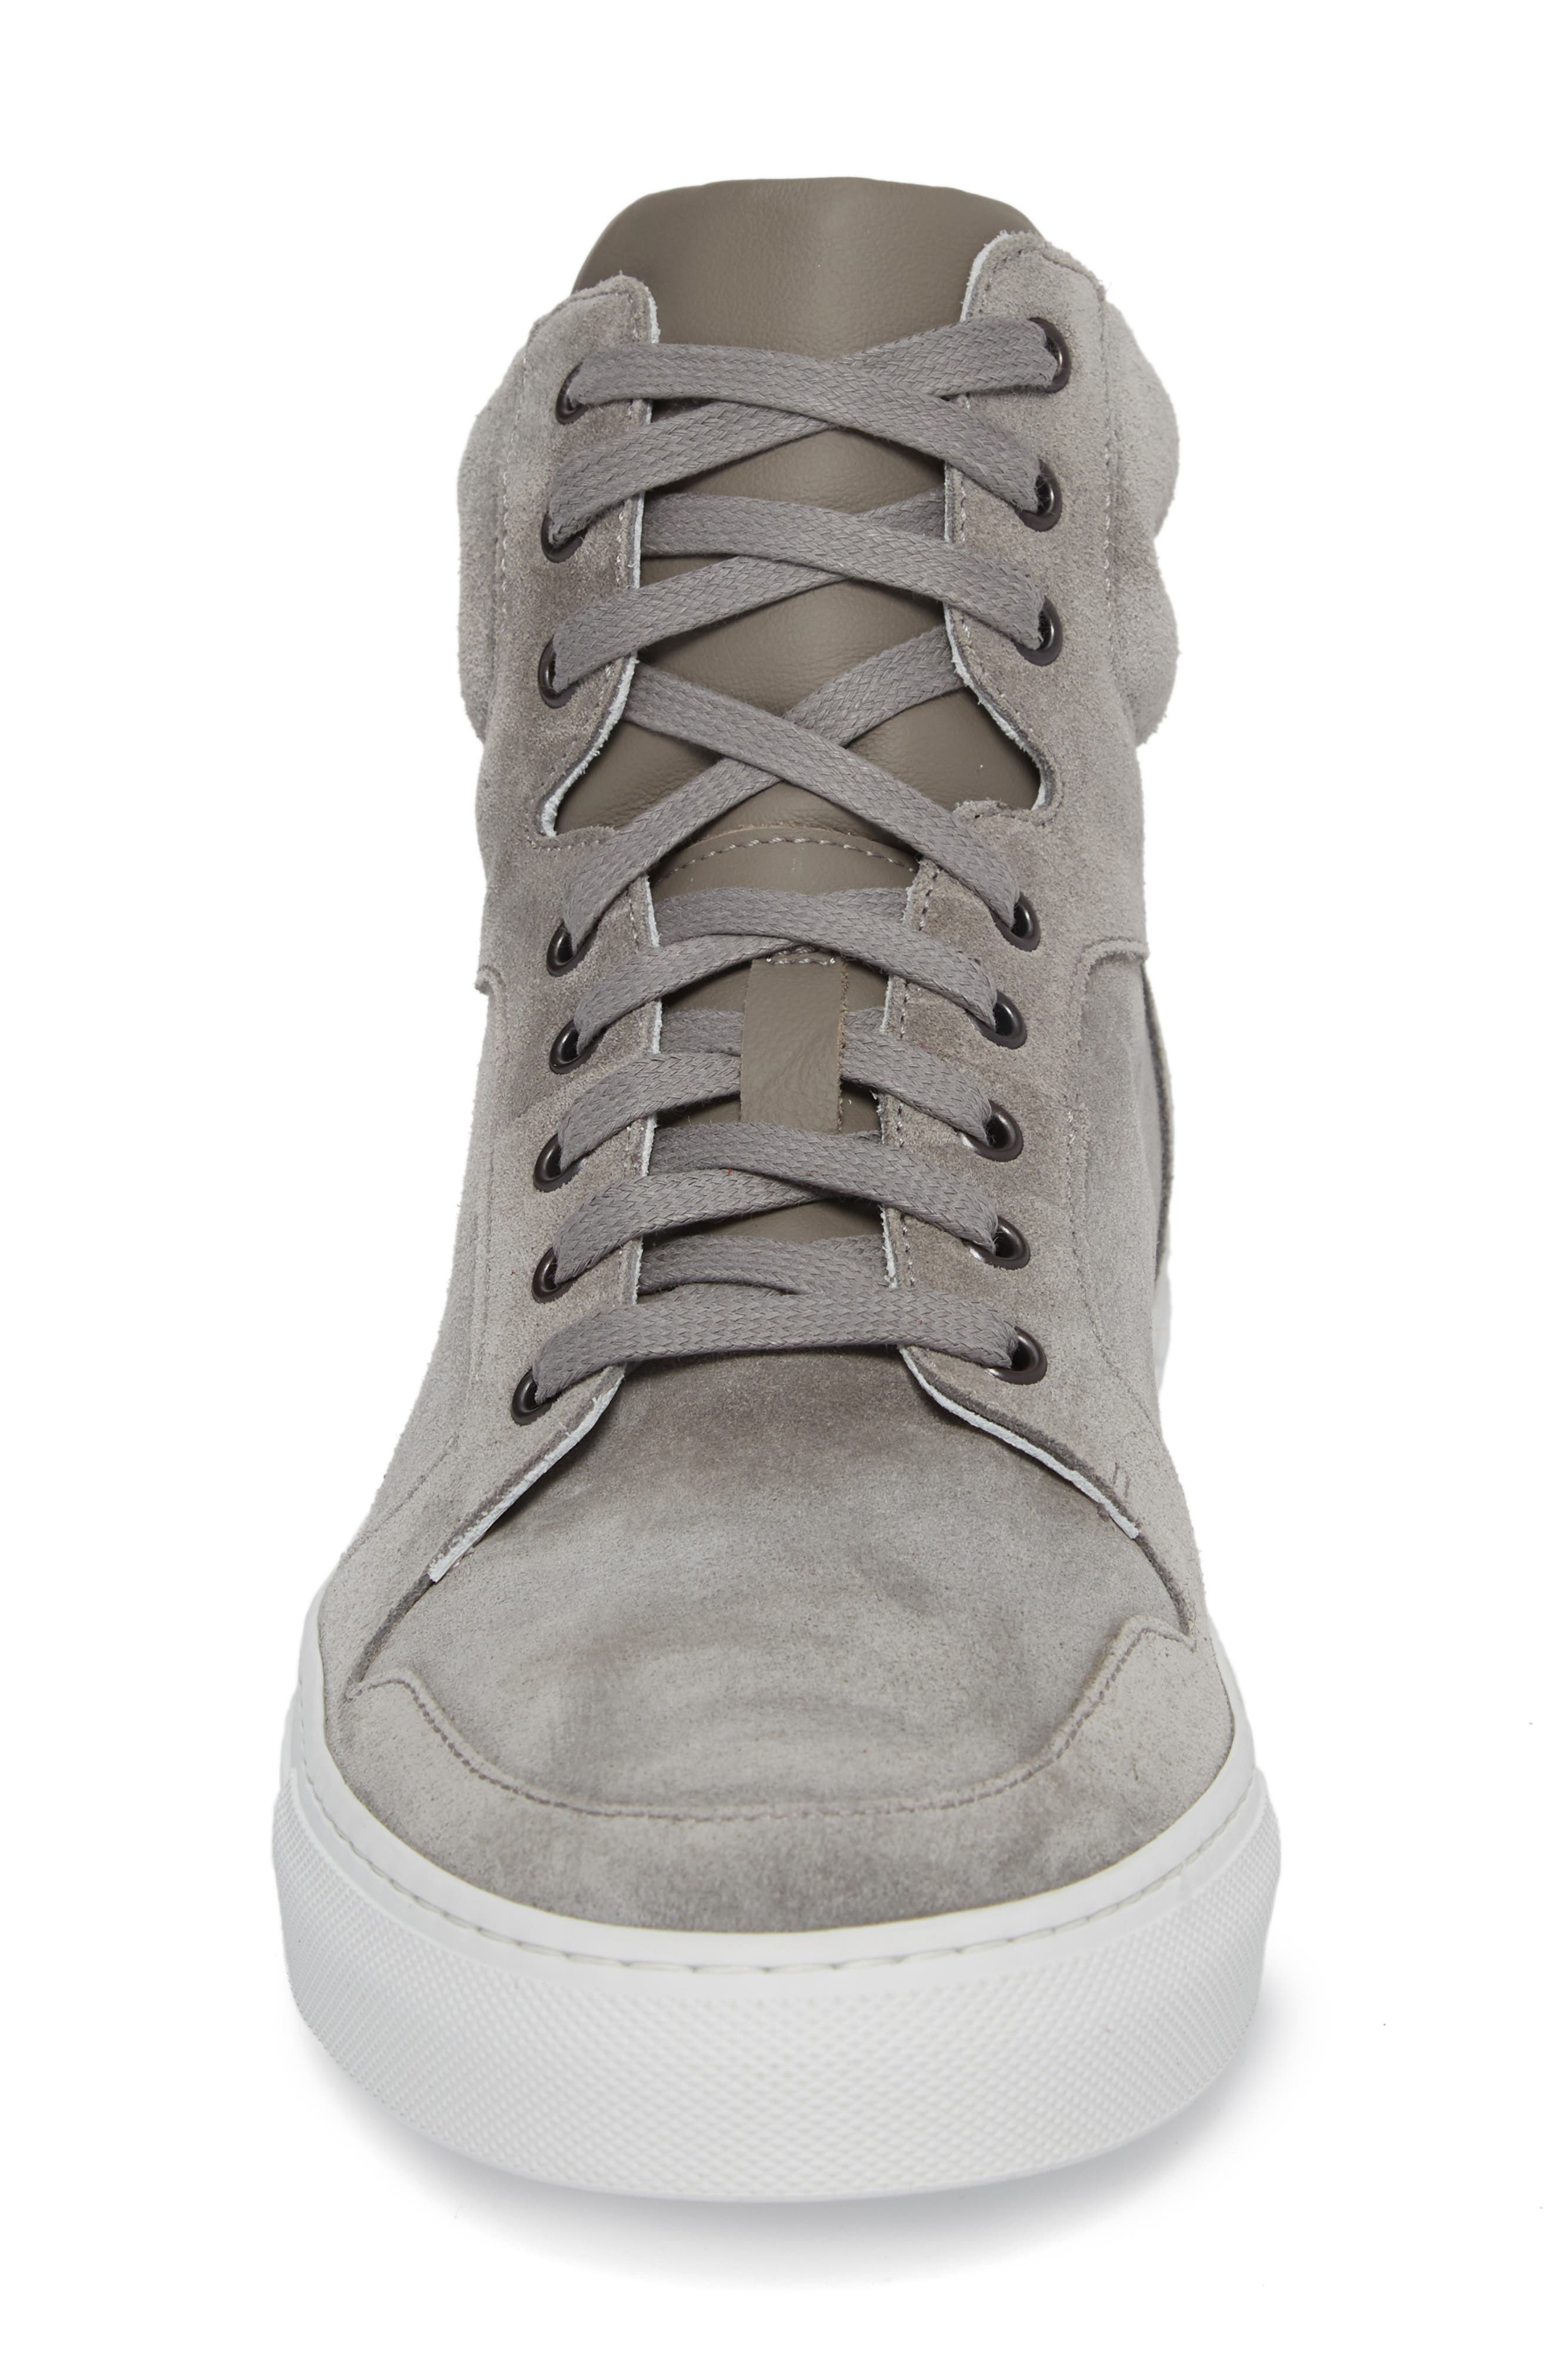 Belmont High Top Sneaker,                             Alternate thumbnail 4, color,                             034